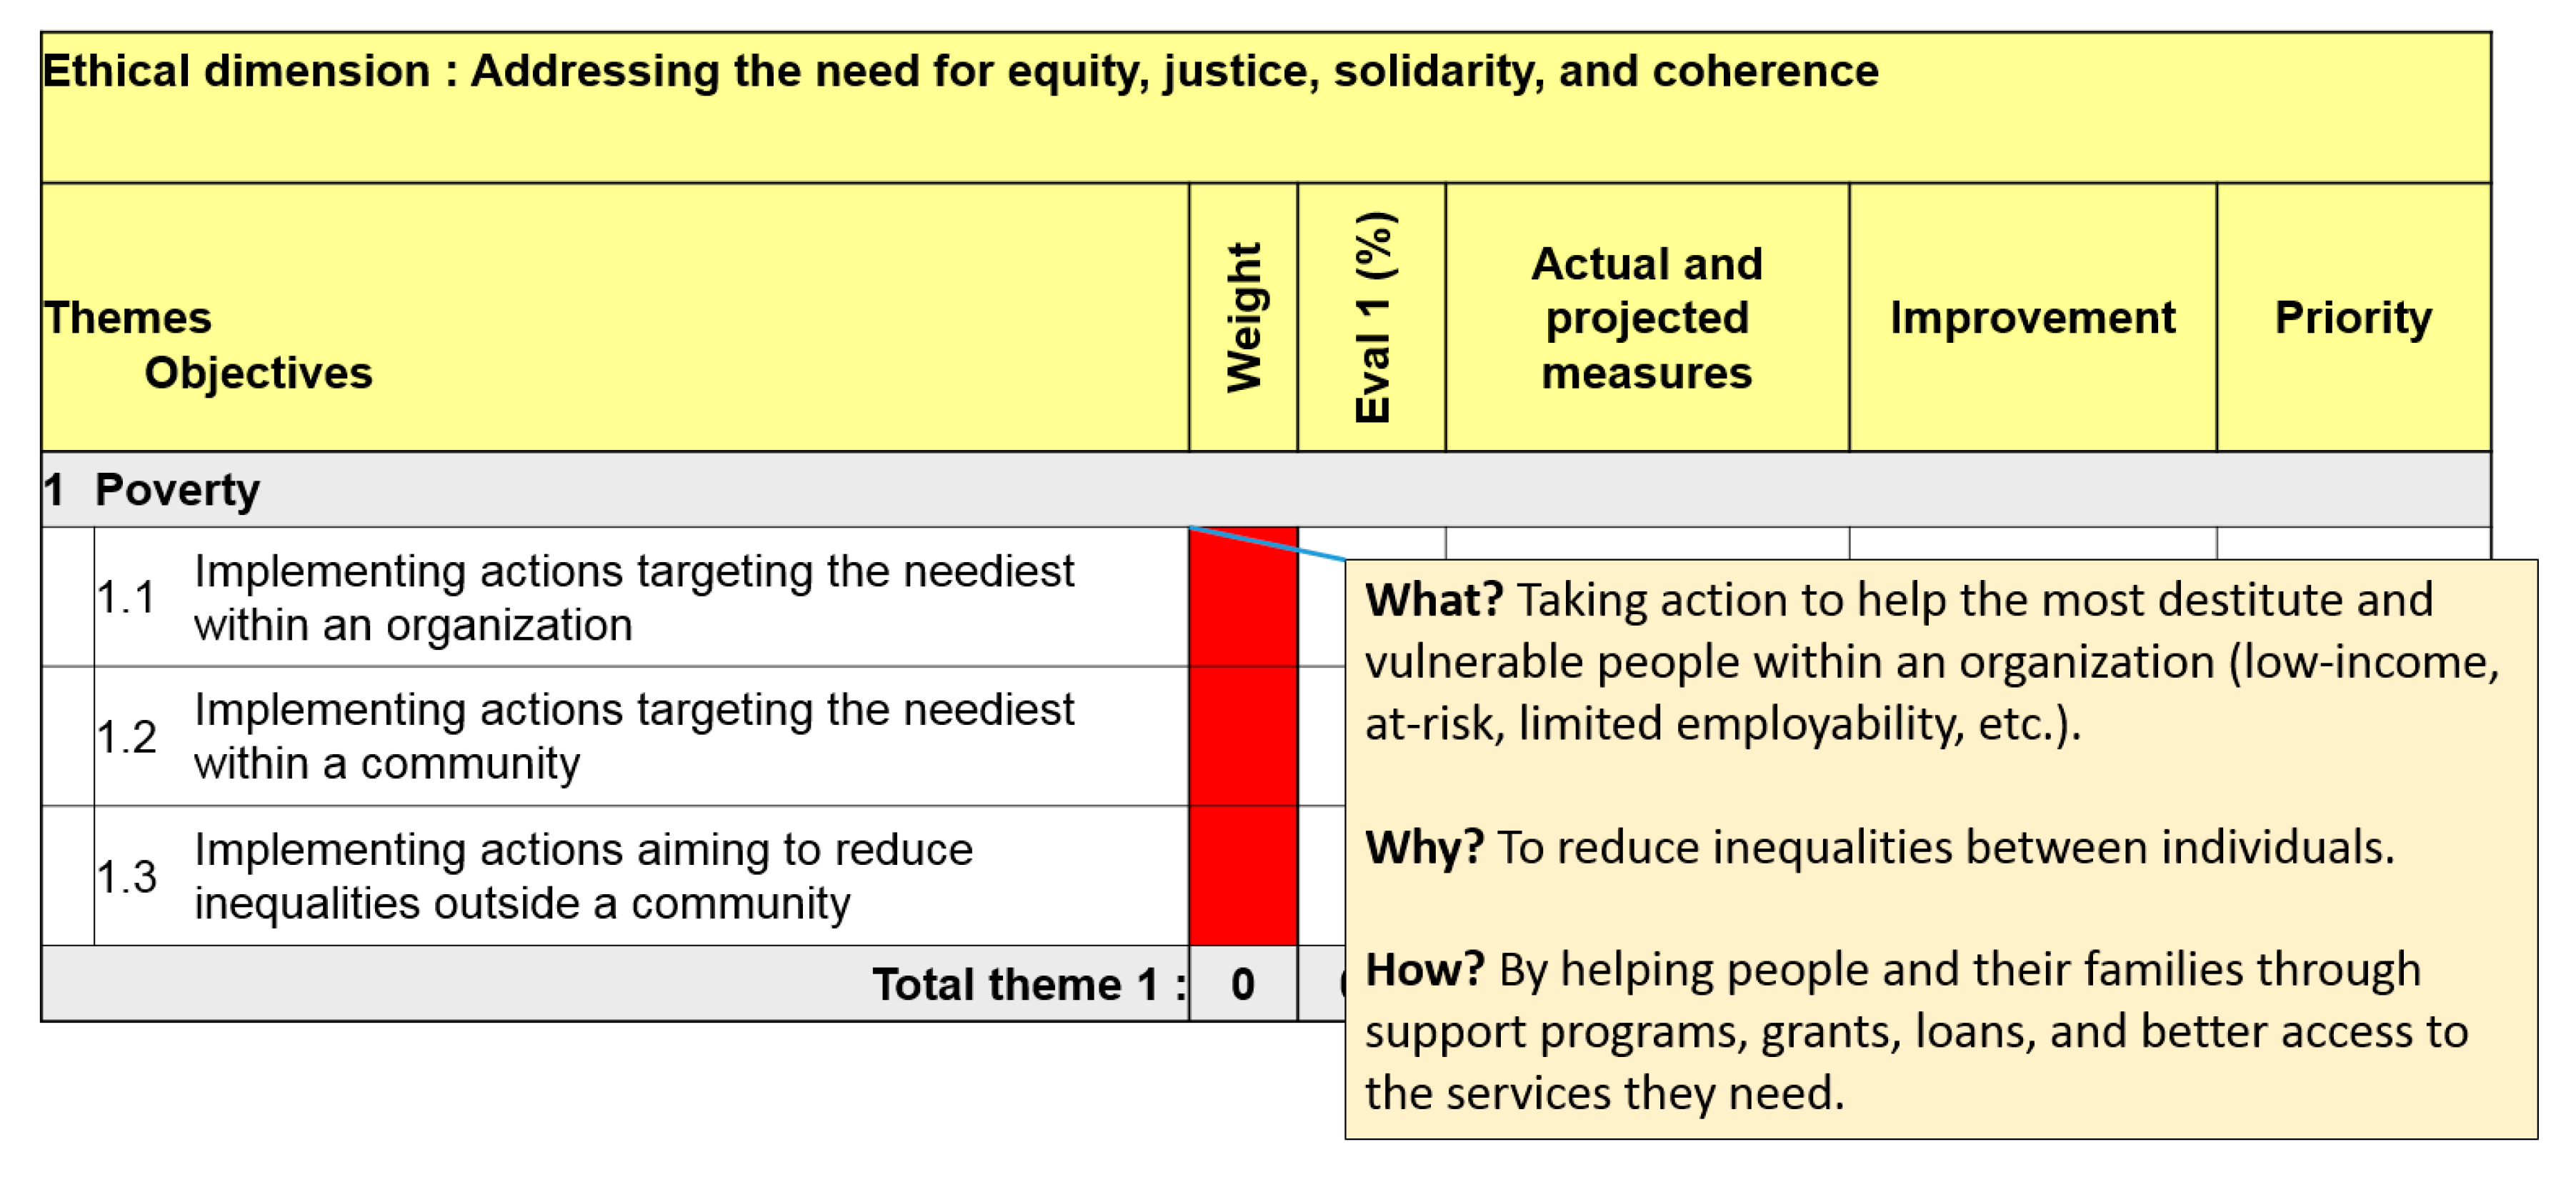 an assesment of the ethical dimensions Use this online-leadership-tool to do an ethics-assessment and improve workplace ethics reap the benefits online leadership tools ethical communication patterns.